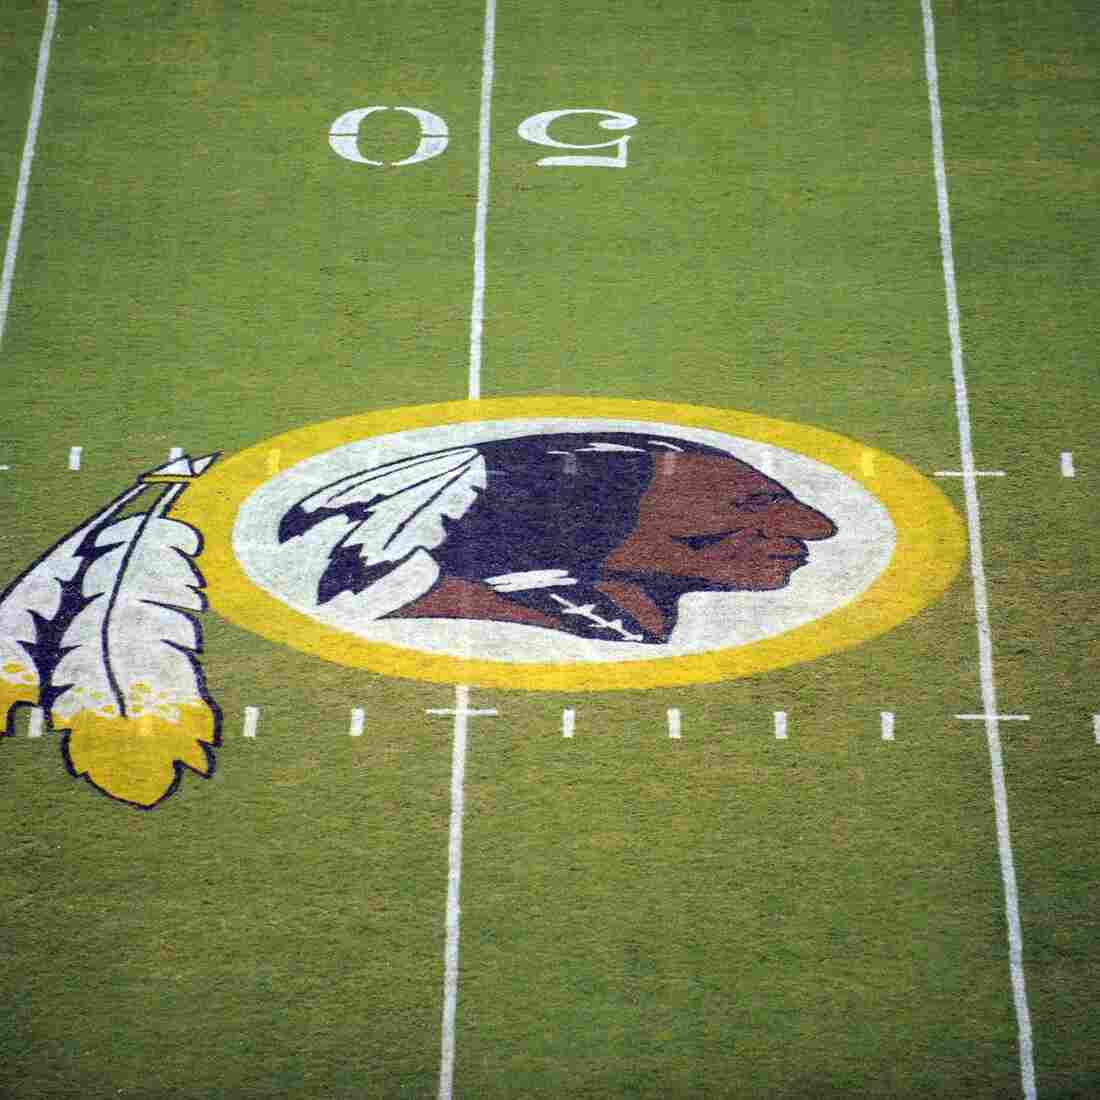 In spite of mounting pressure to change the Washington Redskins' name, team owner Daniel Snyder seems to remain unmoved.